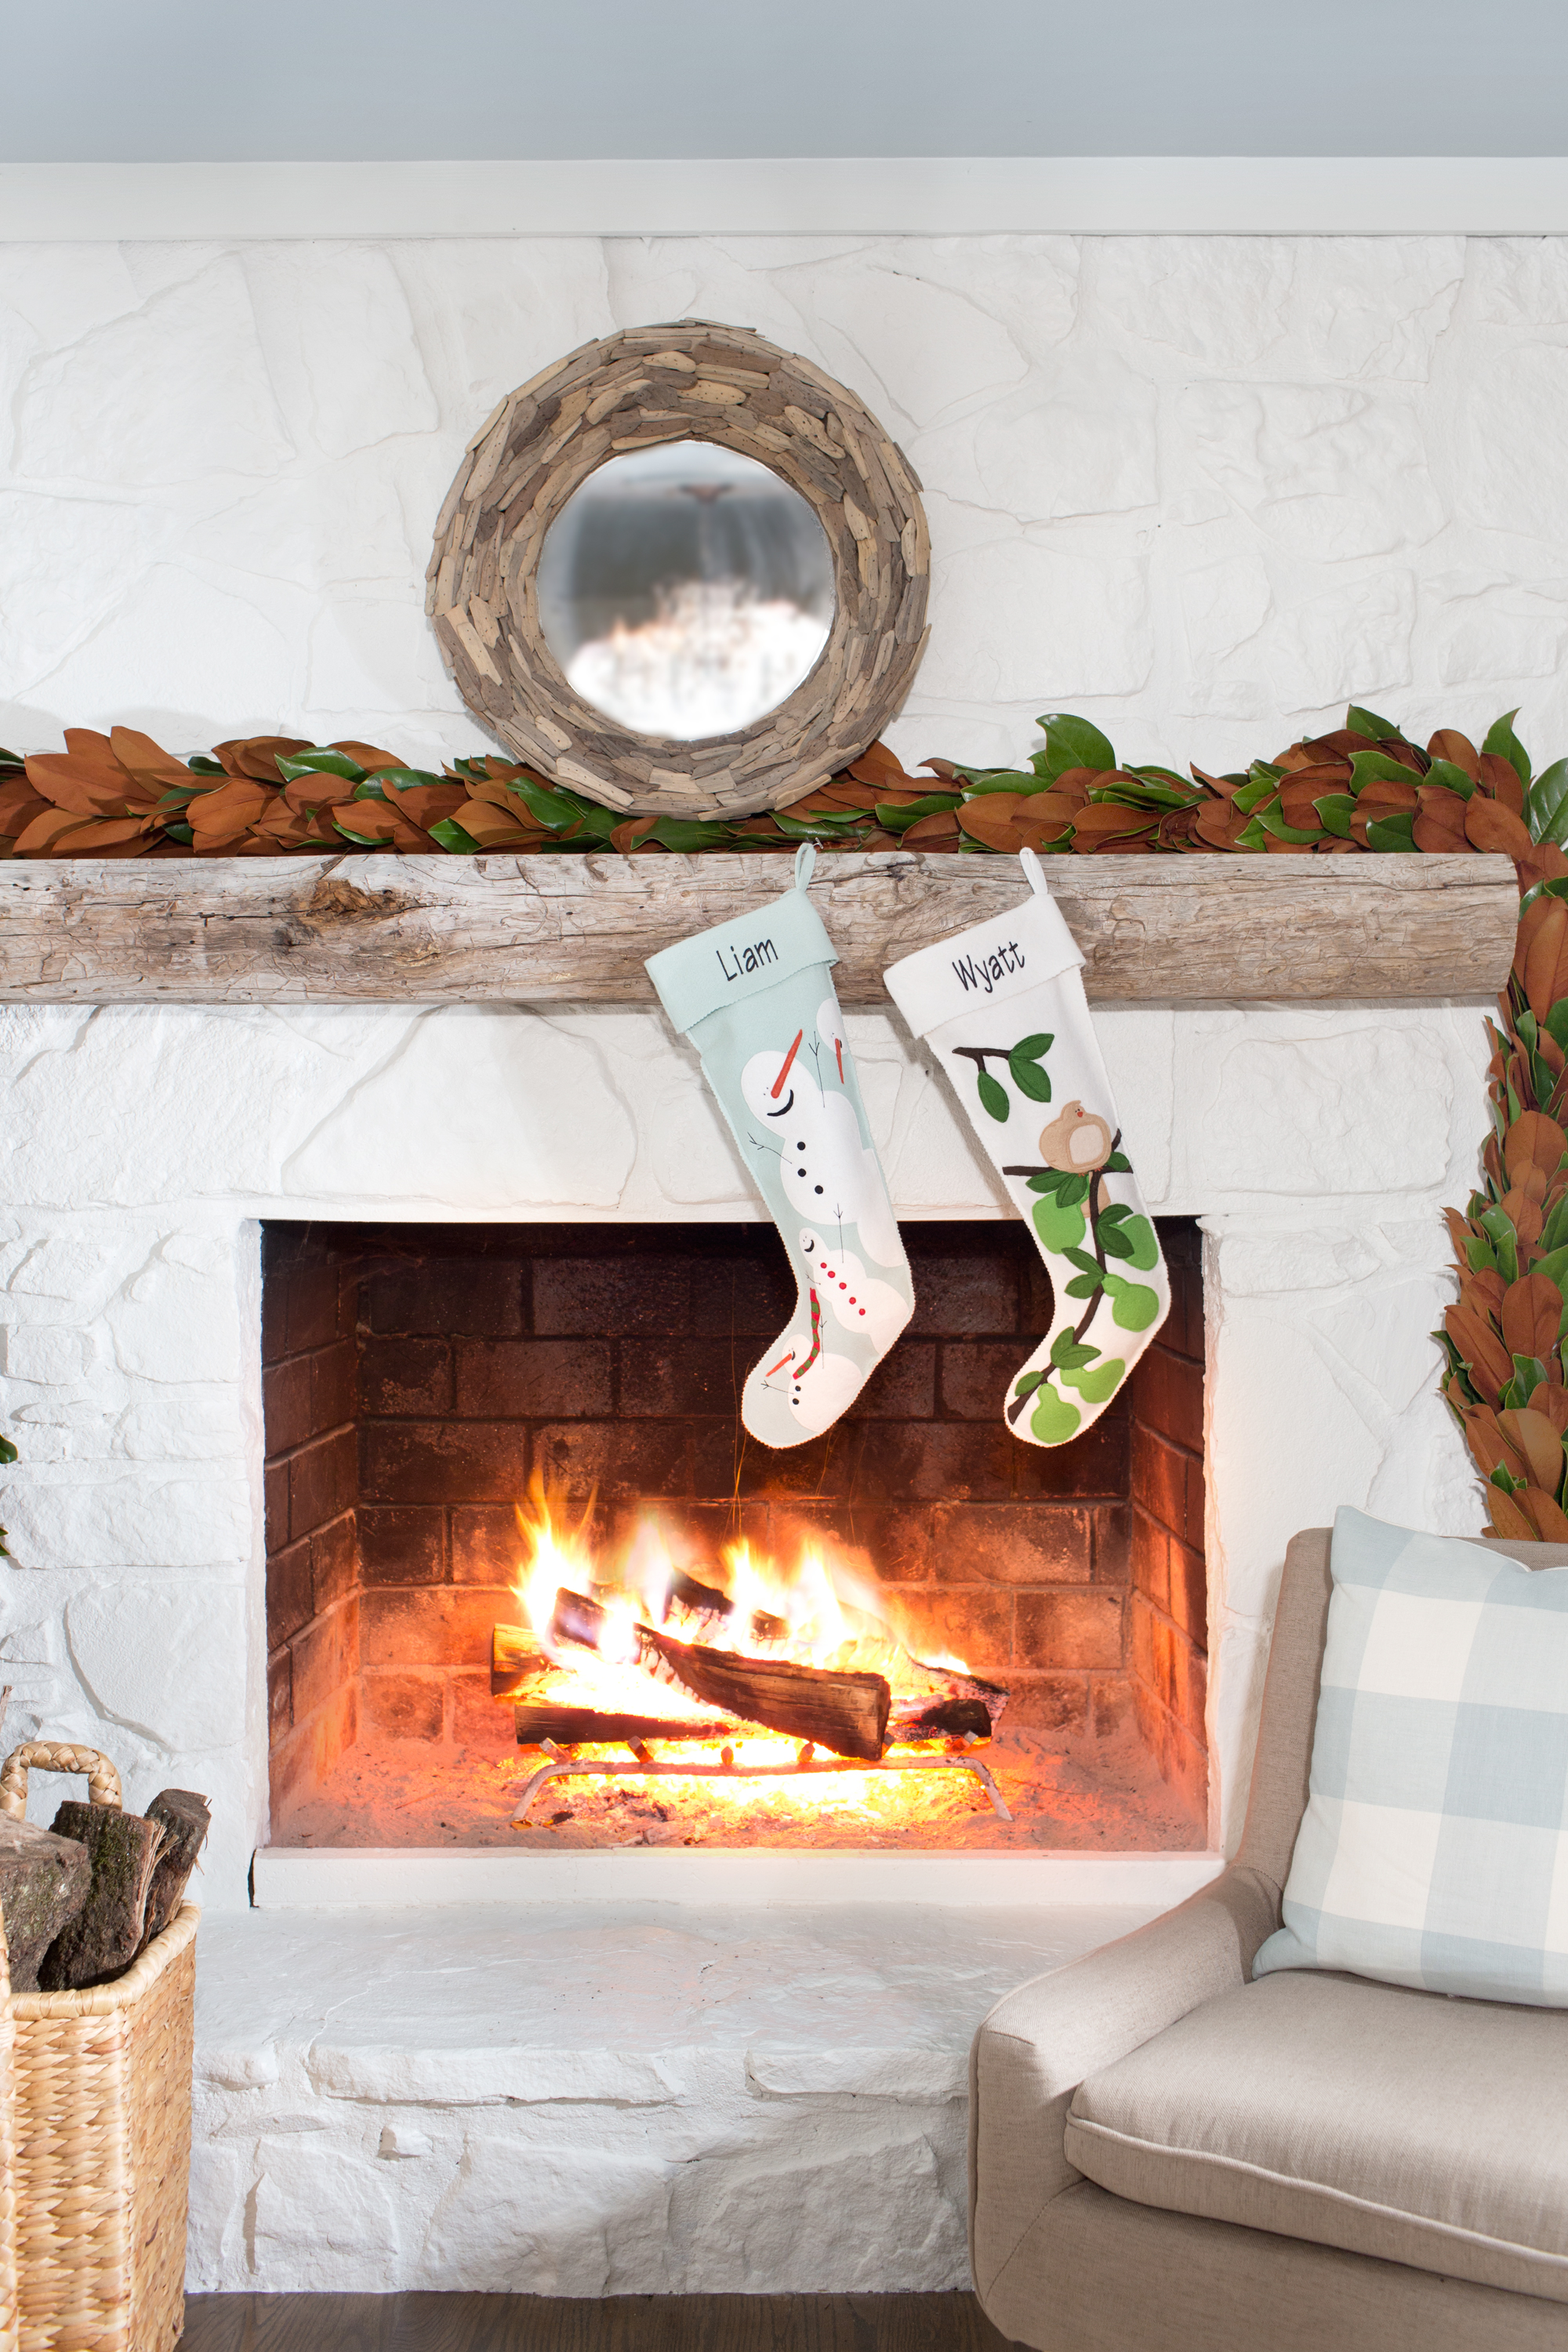 Christmas Mantel Decorations Ideas For Holiday Fireplace - Mantel christmas decorating ideas